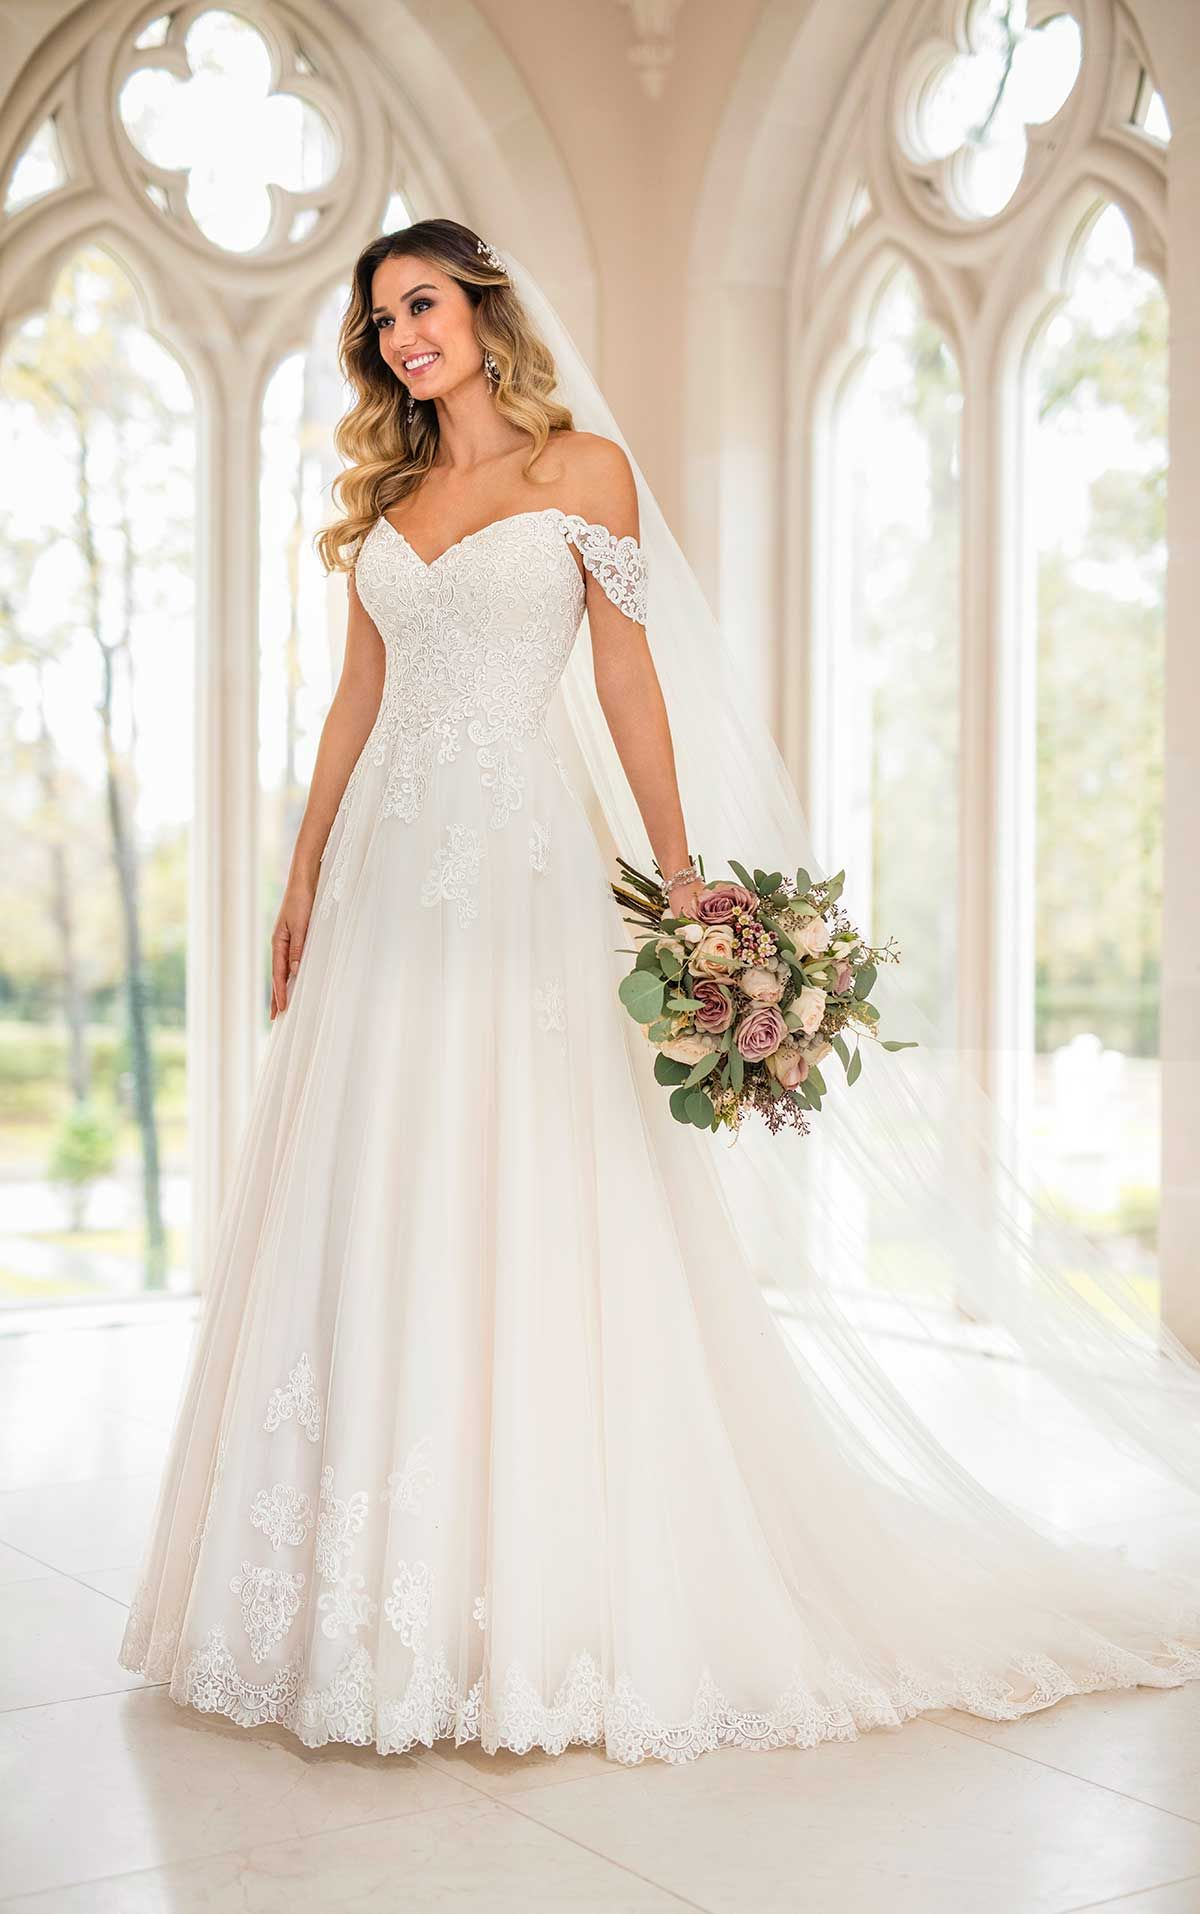 A Line Wedding Dress.Dreamy A Line Wedding Dress Wedding Gowns In 2019 Wedding